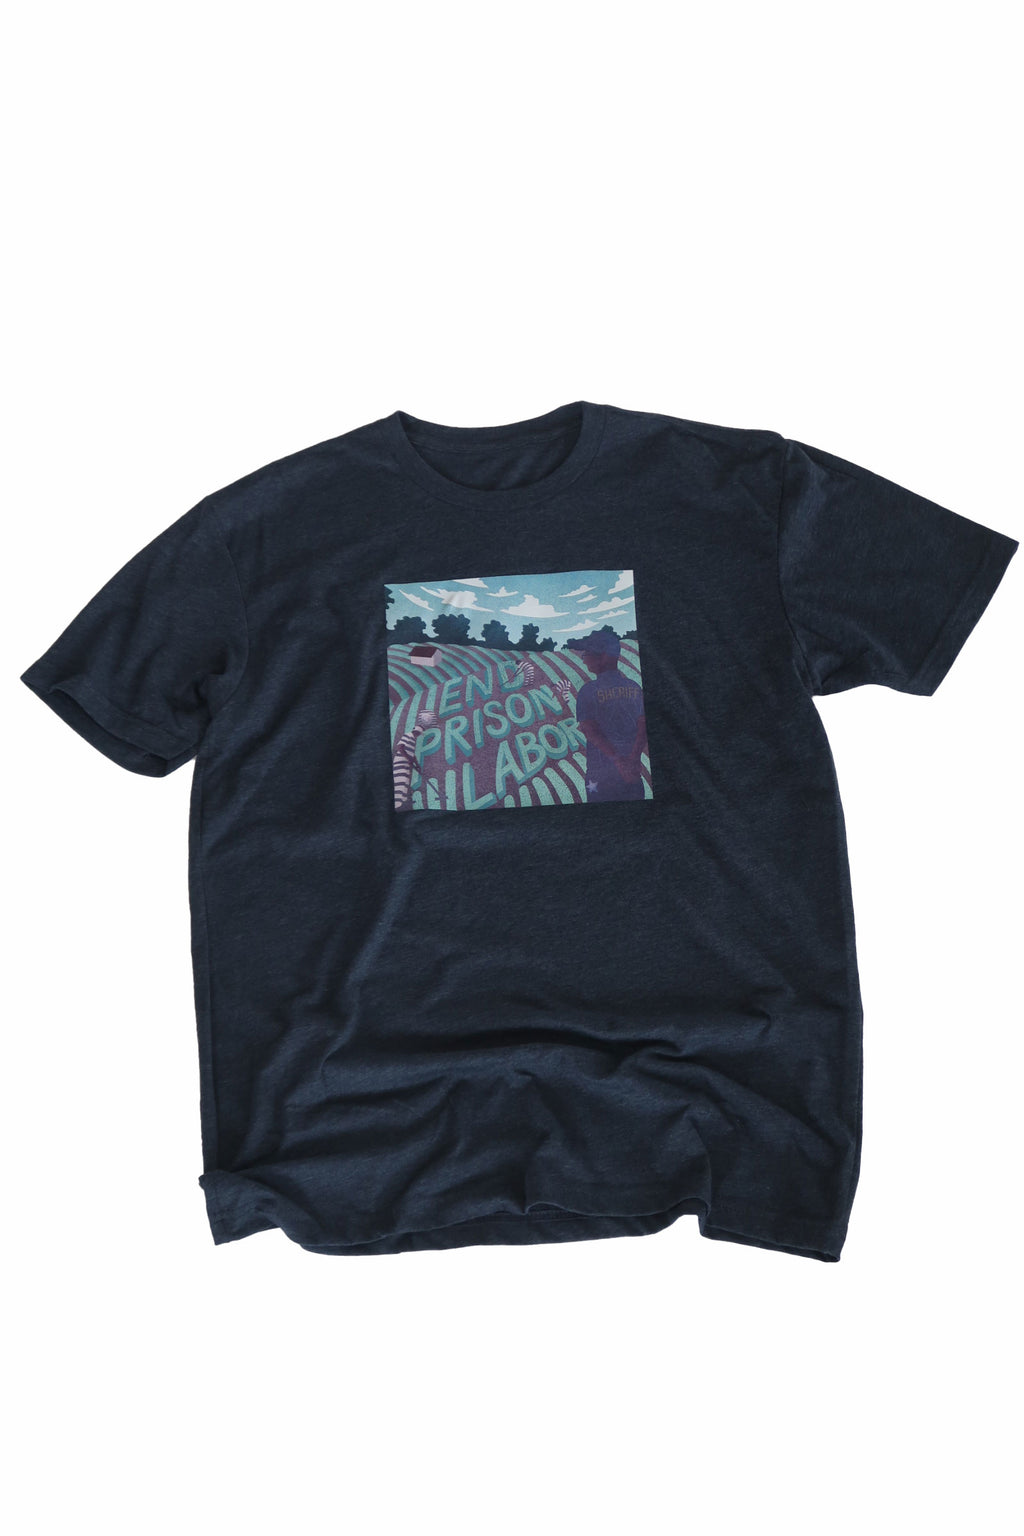 End Prison Labor Illustration Shirt in Navy - Trunk Series, LLC